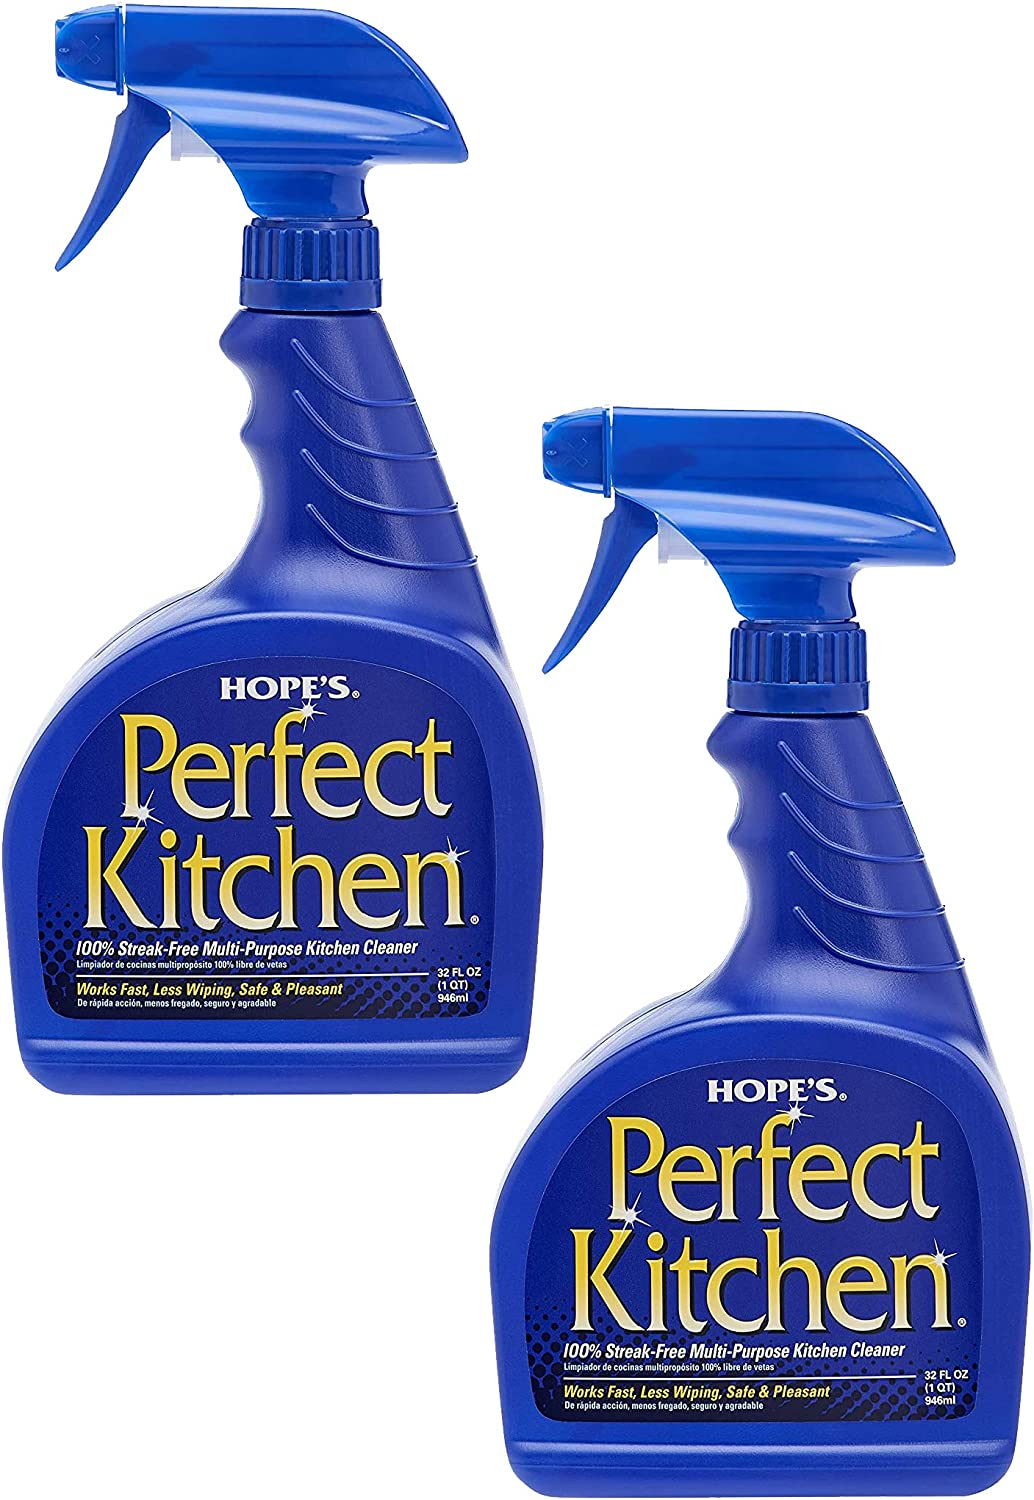 HOPE's Perfect Kitchen Degreaser